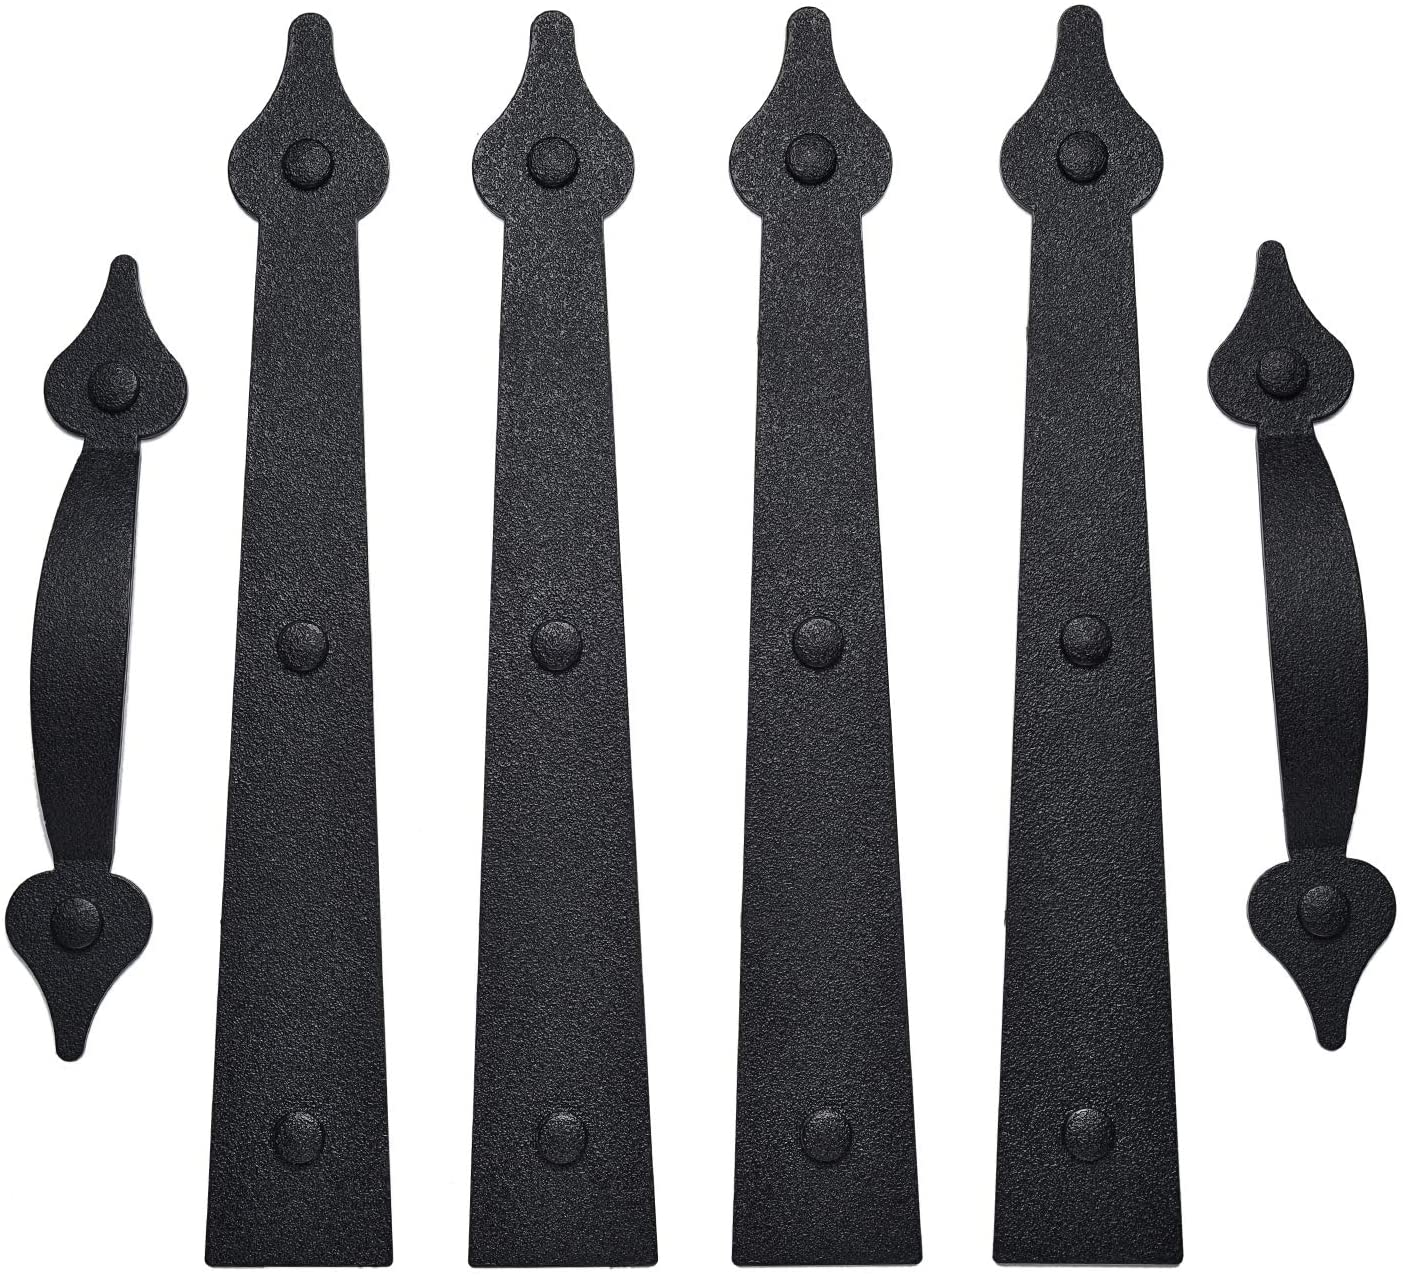 Garage Door Magnetic Decorative Hardware Carriage Accents Faux Hinges Handle Kit Curb Appeal Decor,Pack of 1,Color Black